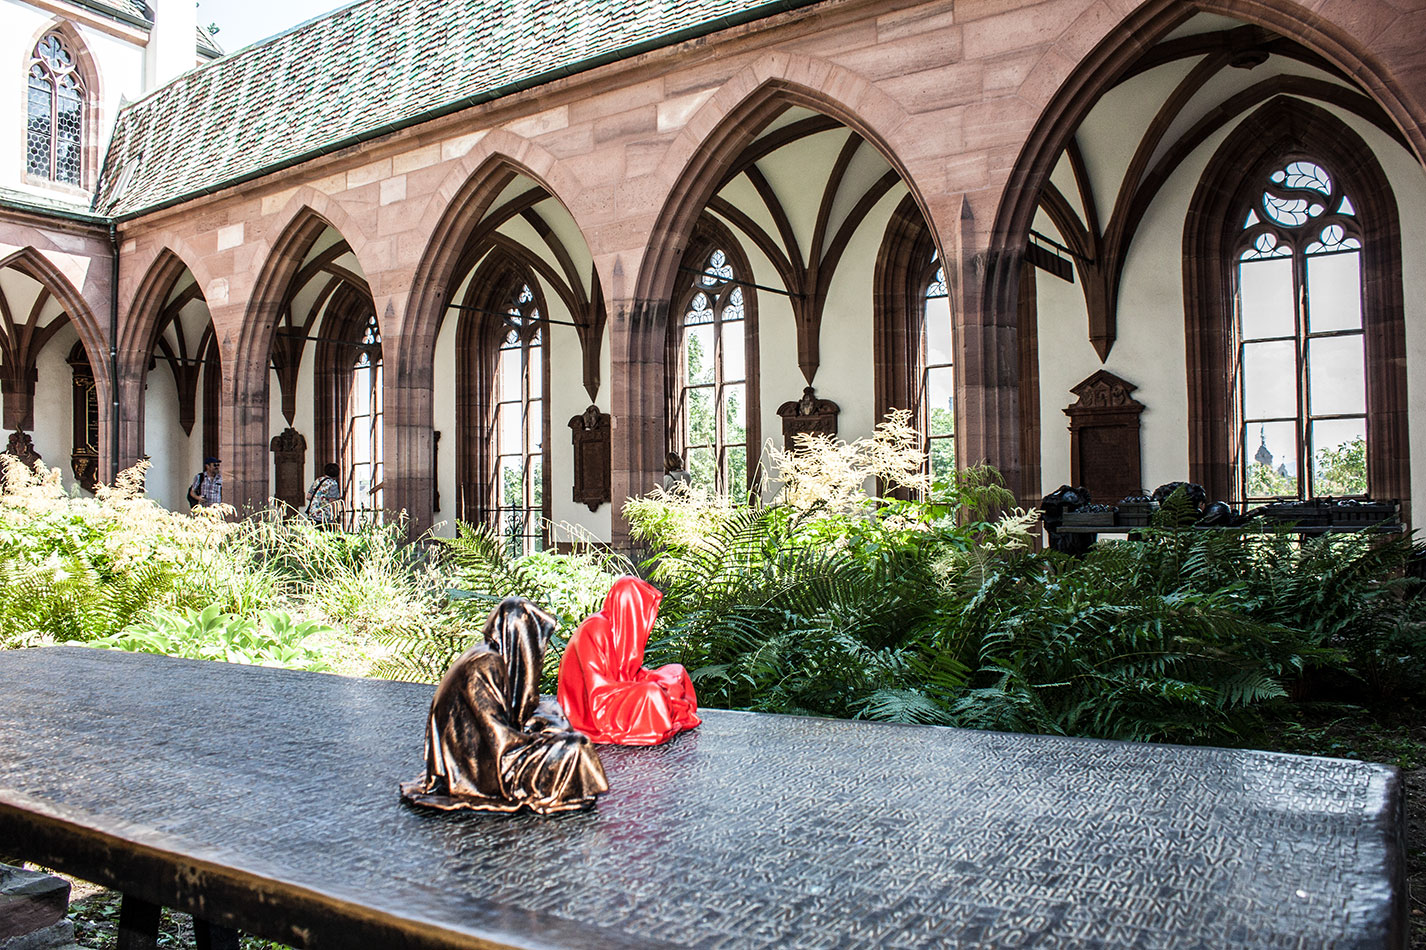 highlights-public-artbasel-scope-art-show-guardians-of-time-manfred-kielnhofer-steinreich-contemporary-art-sculpture-tour-art-parcours-1534y